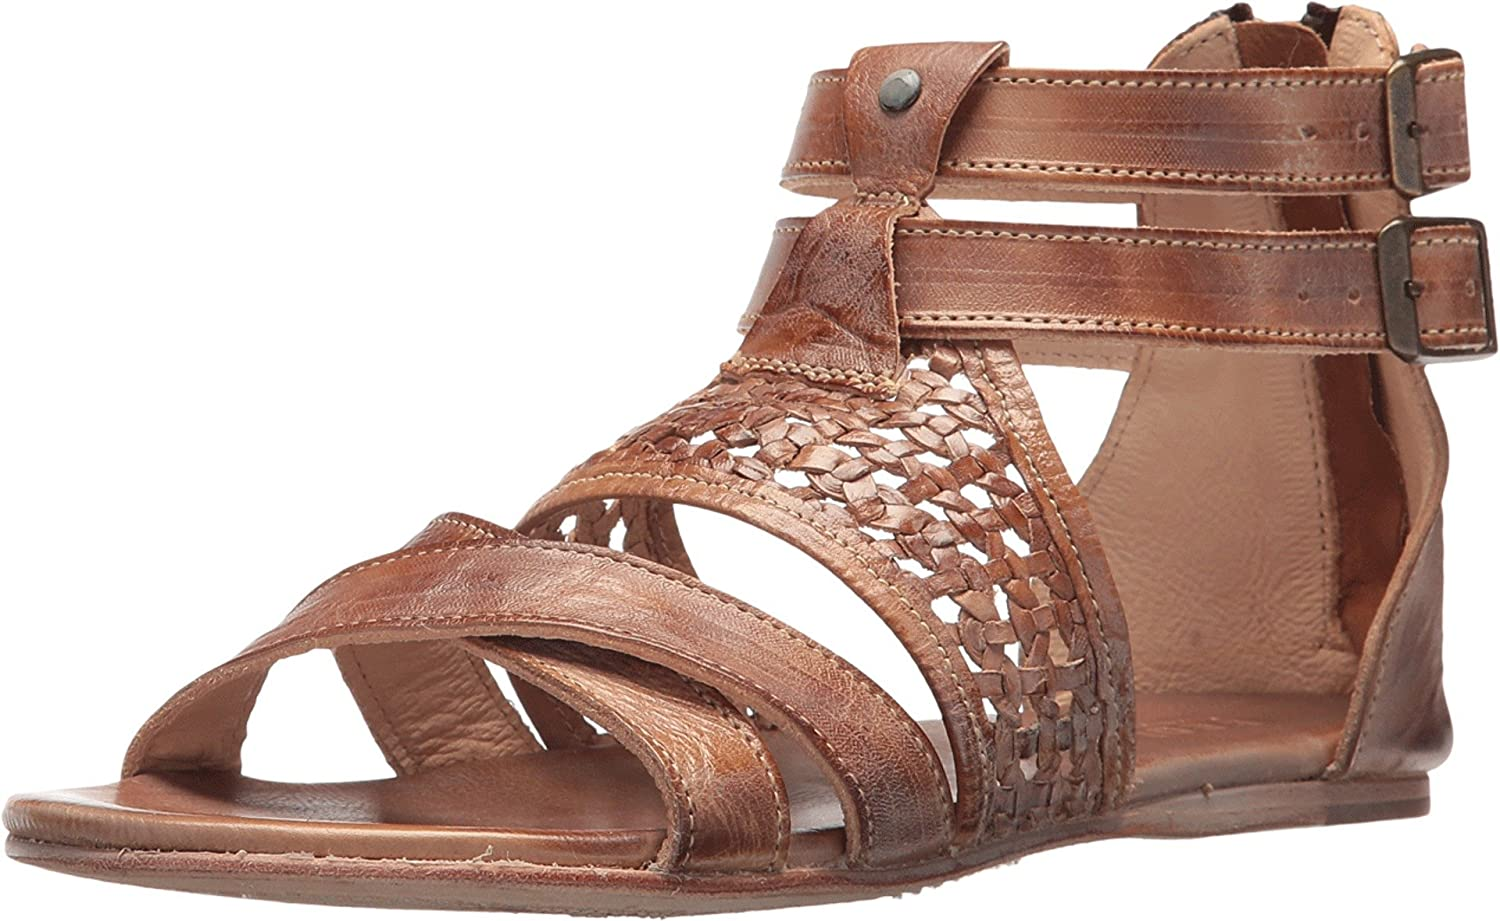 Max 81% OFF Bed Stu New product type Women's Capriana Leather Sandal